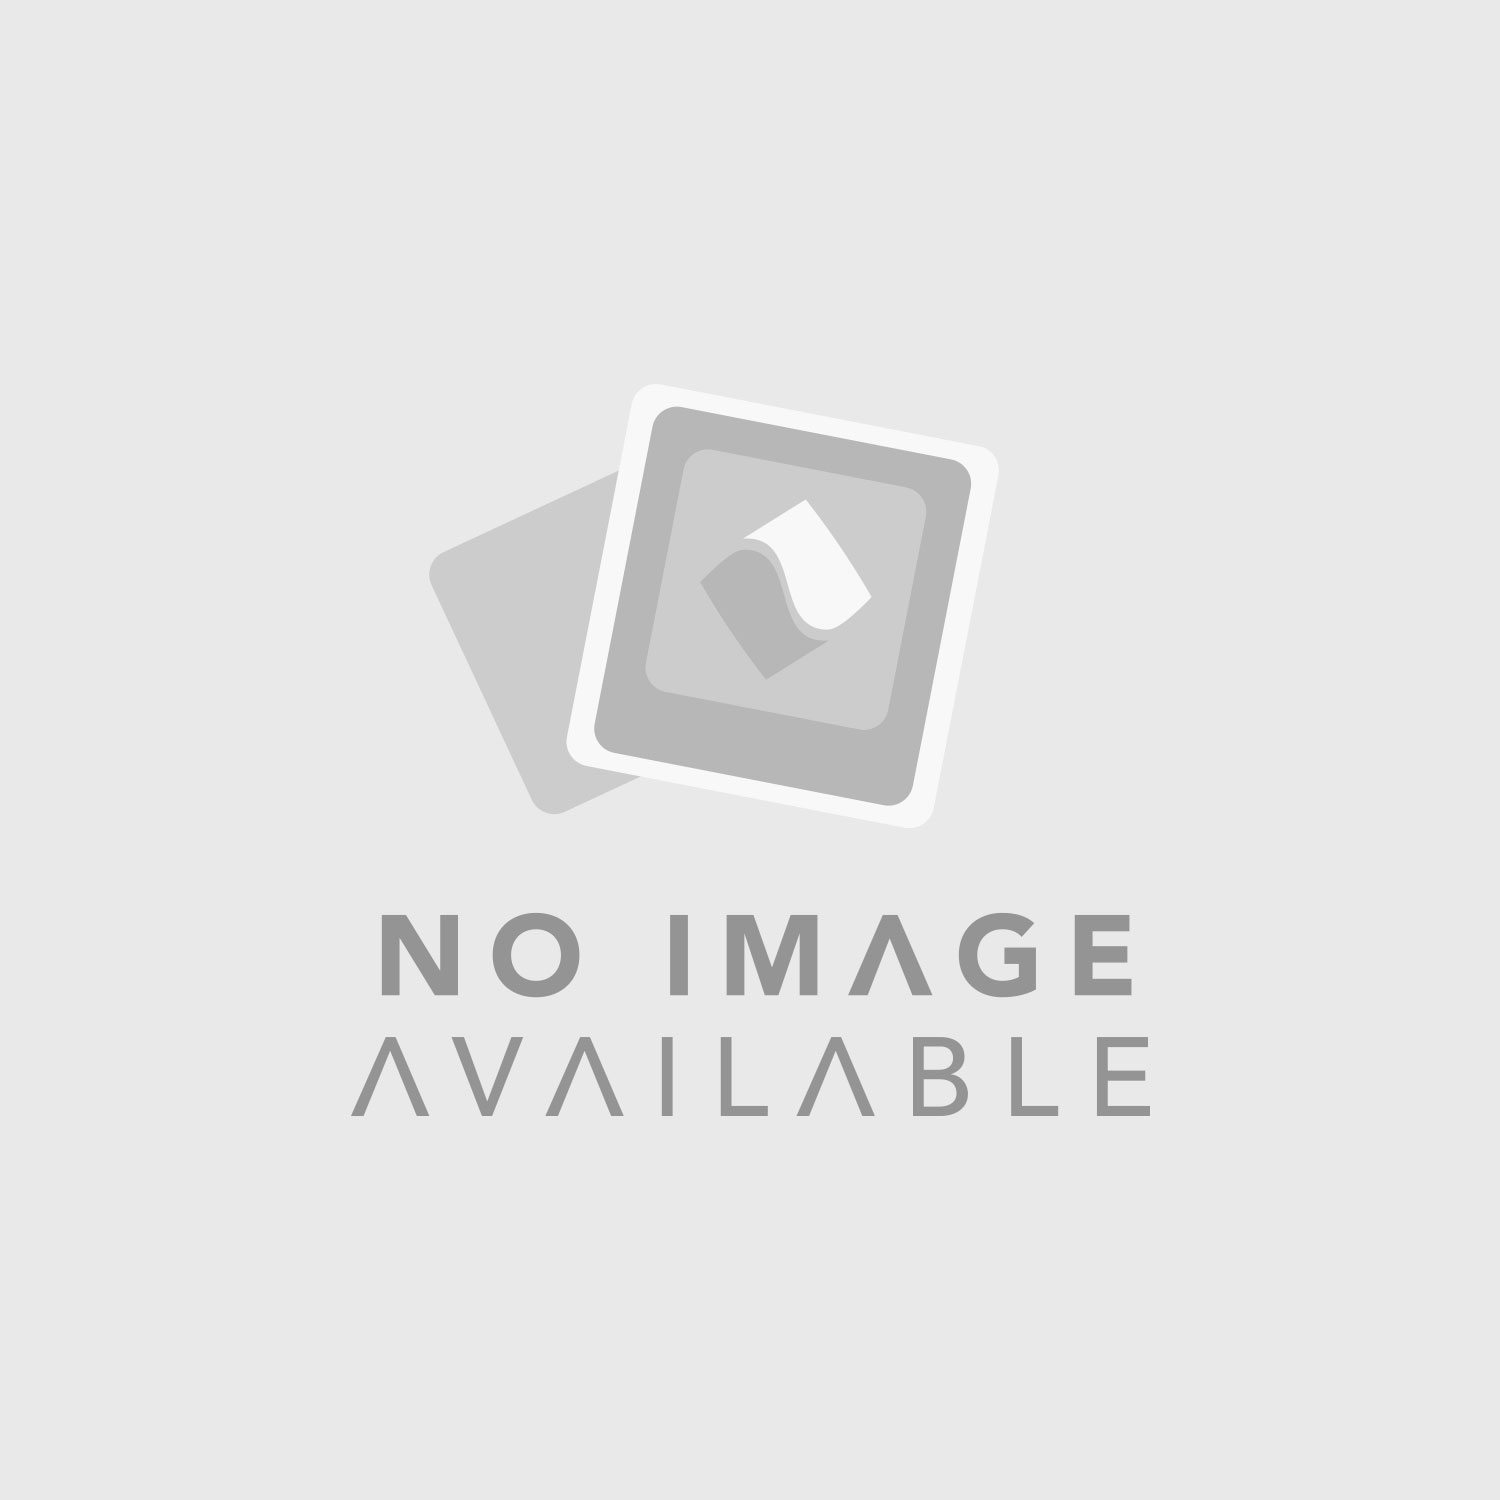 Williams Sound HED 040 Dual Ear Muff Hearing Protector Headphones